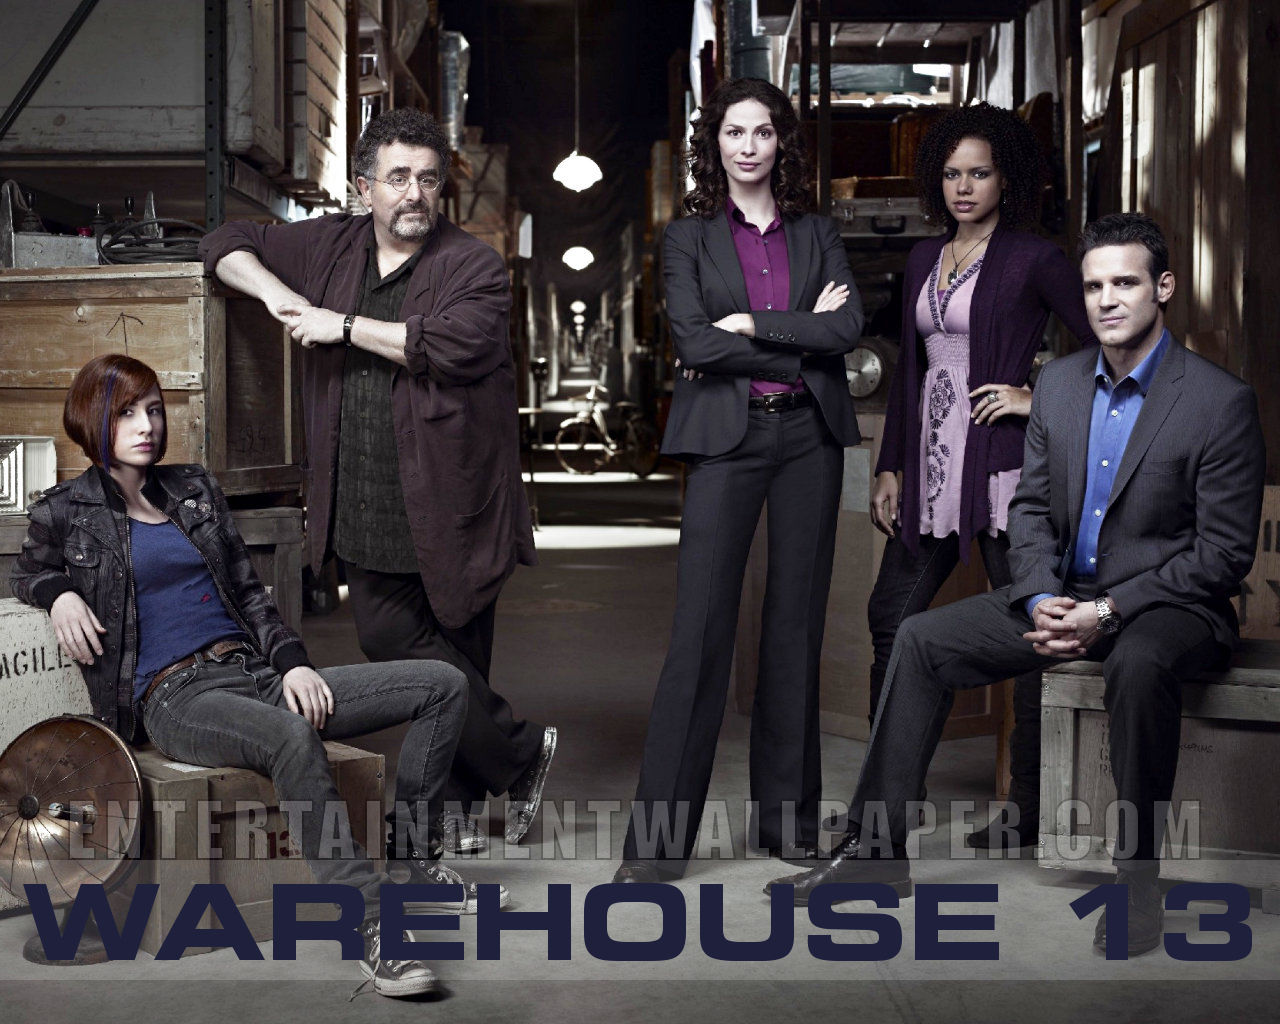 High Resolution Wallpaper | Warehouse 13 1280x1024 px